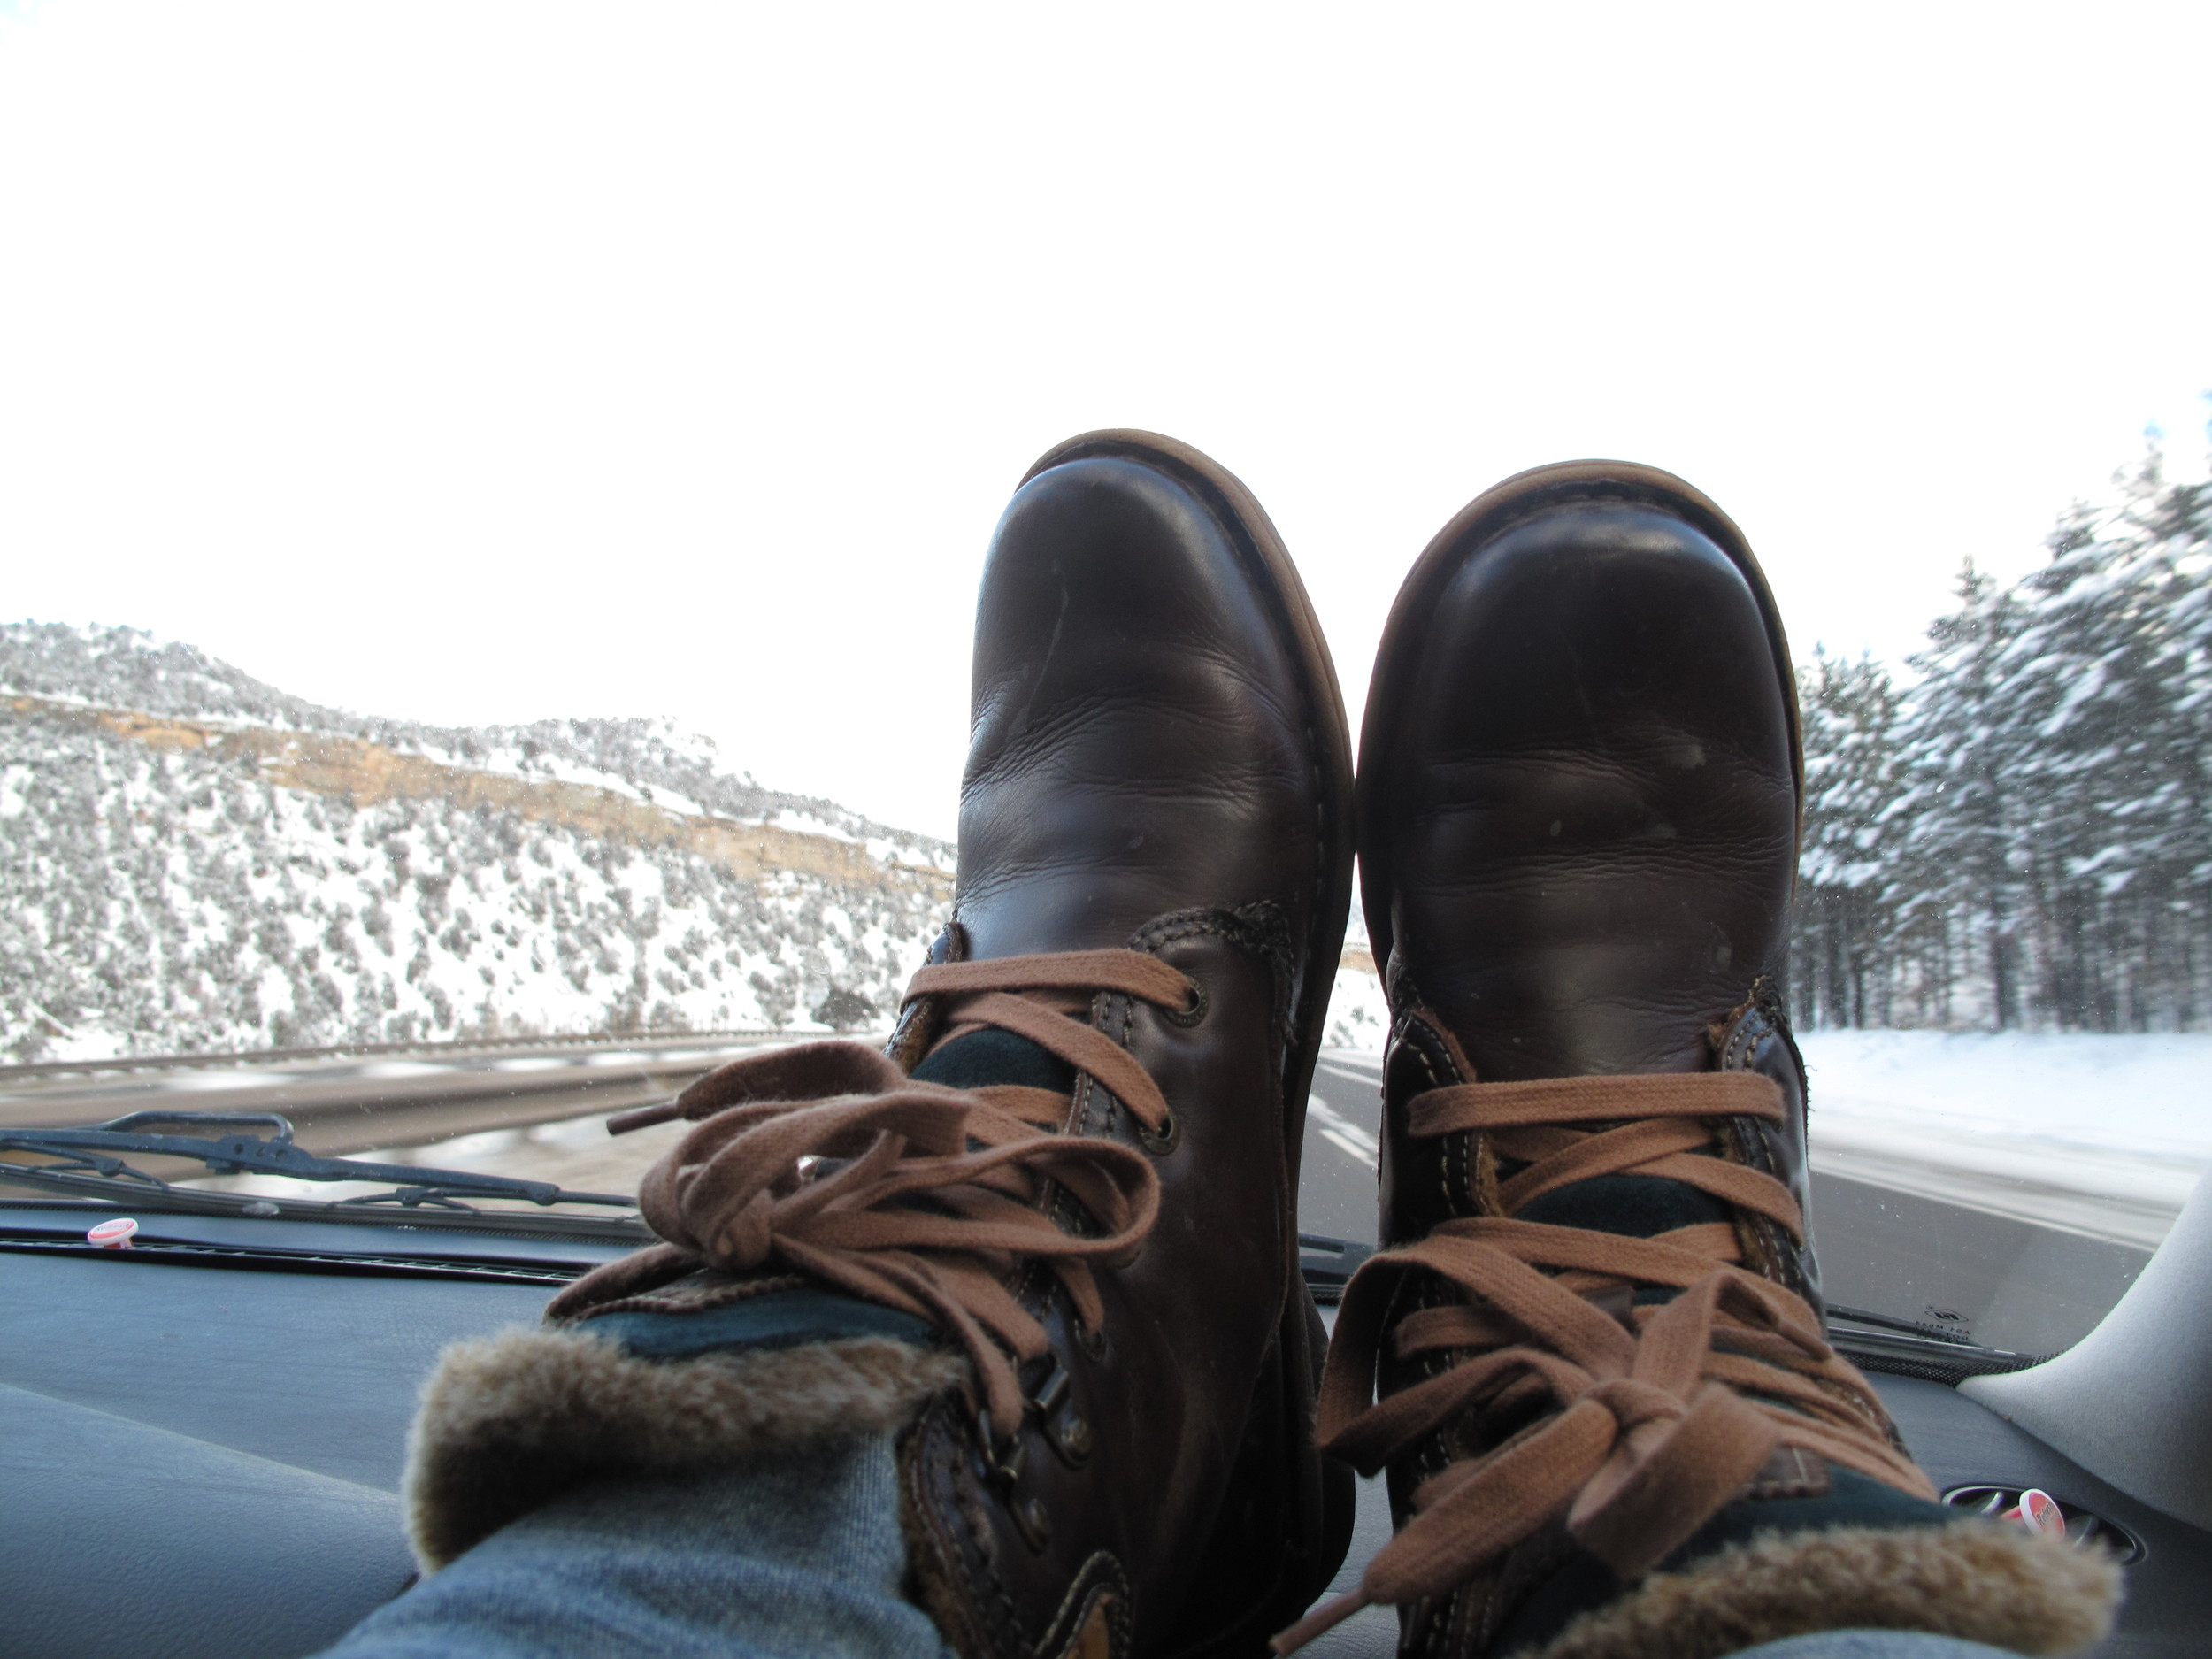 Winter boots on the dashboard, road trips.